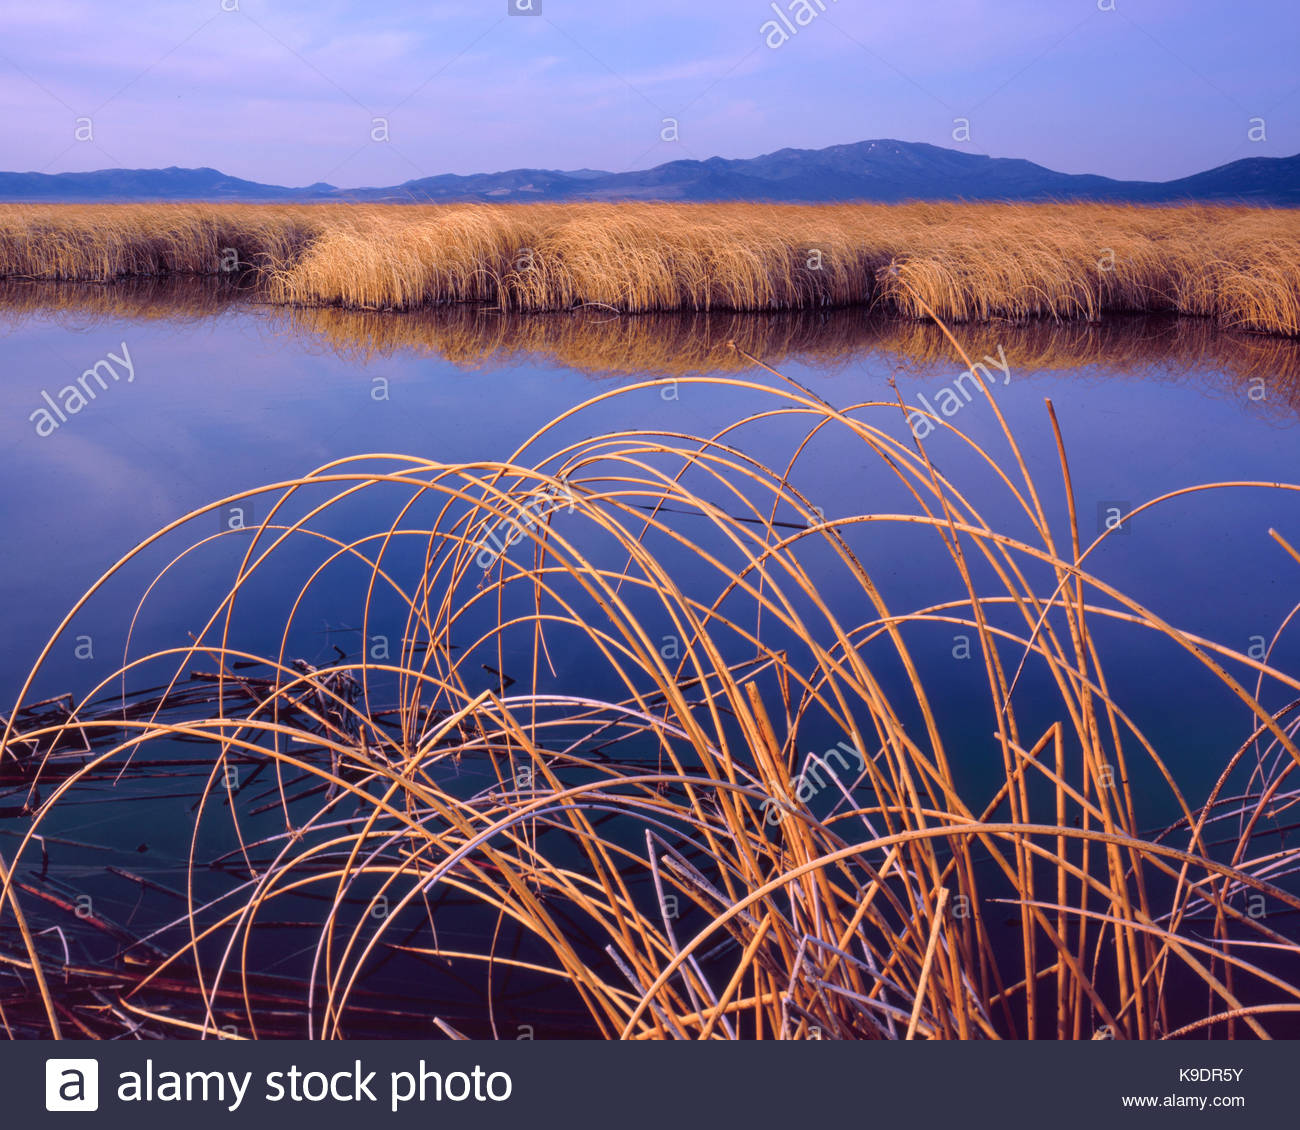 Reeds, Ruby Lake NationalWildlife Refuge, Nevada - Stock Image